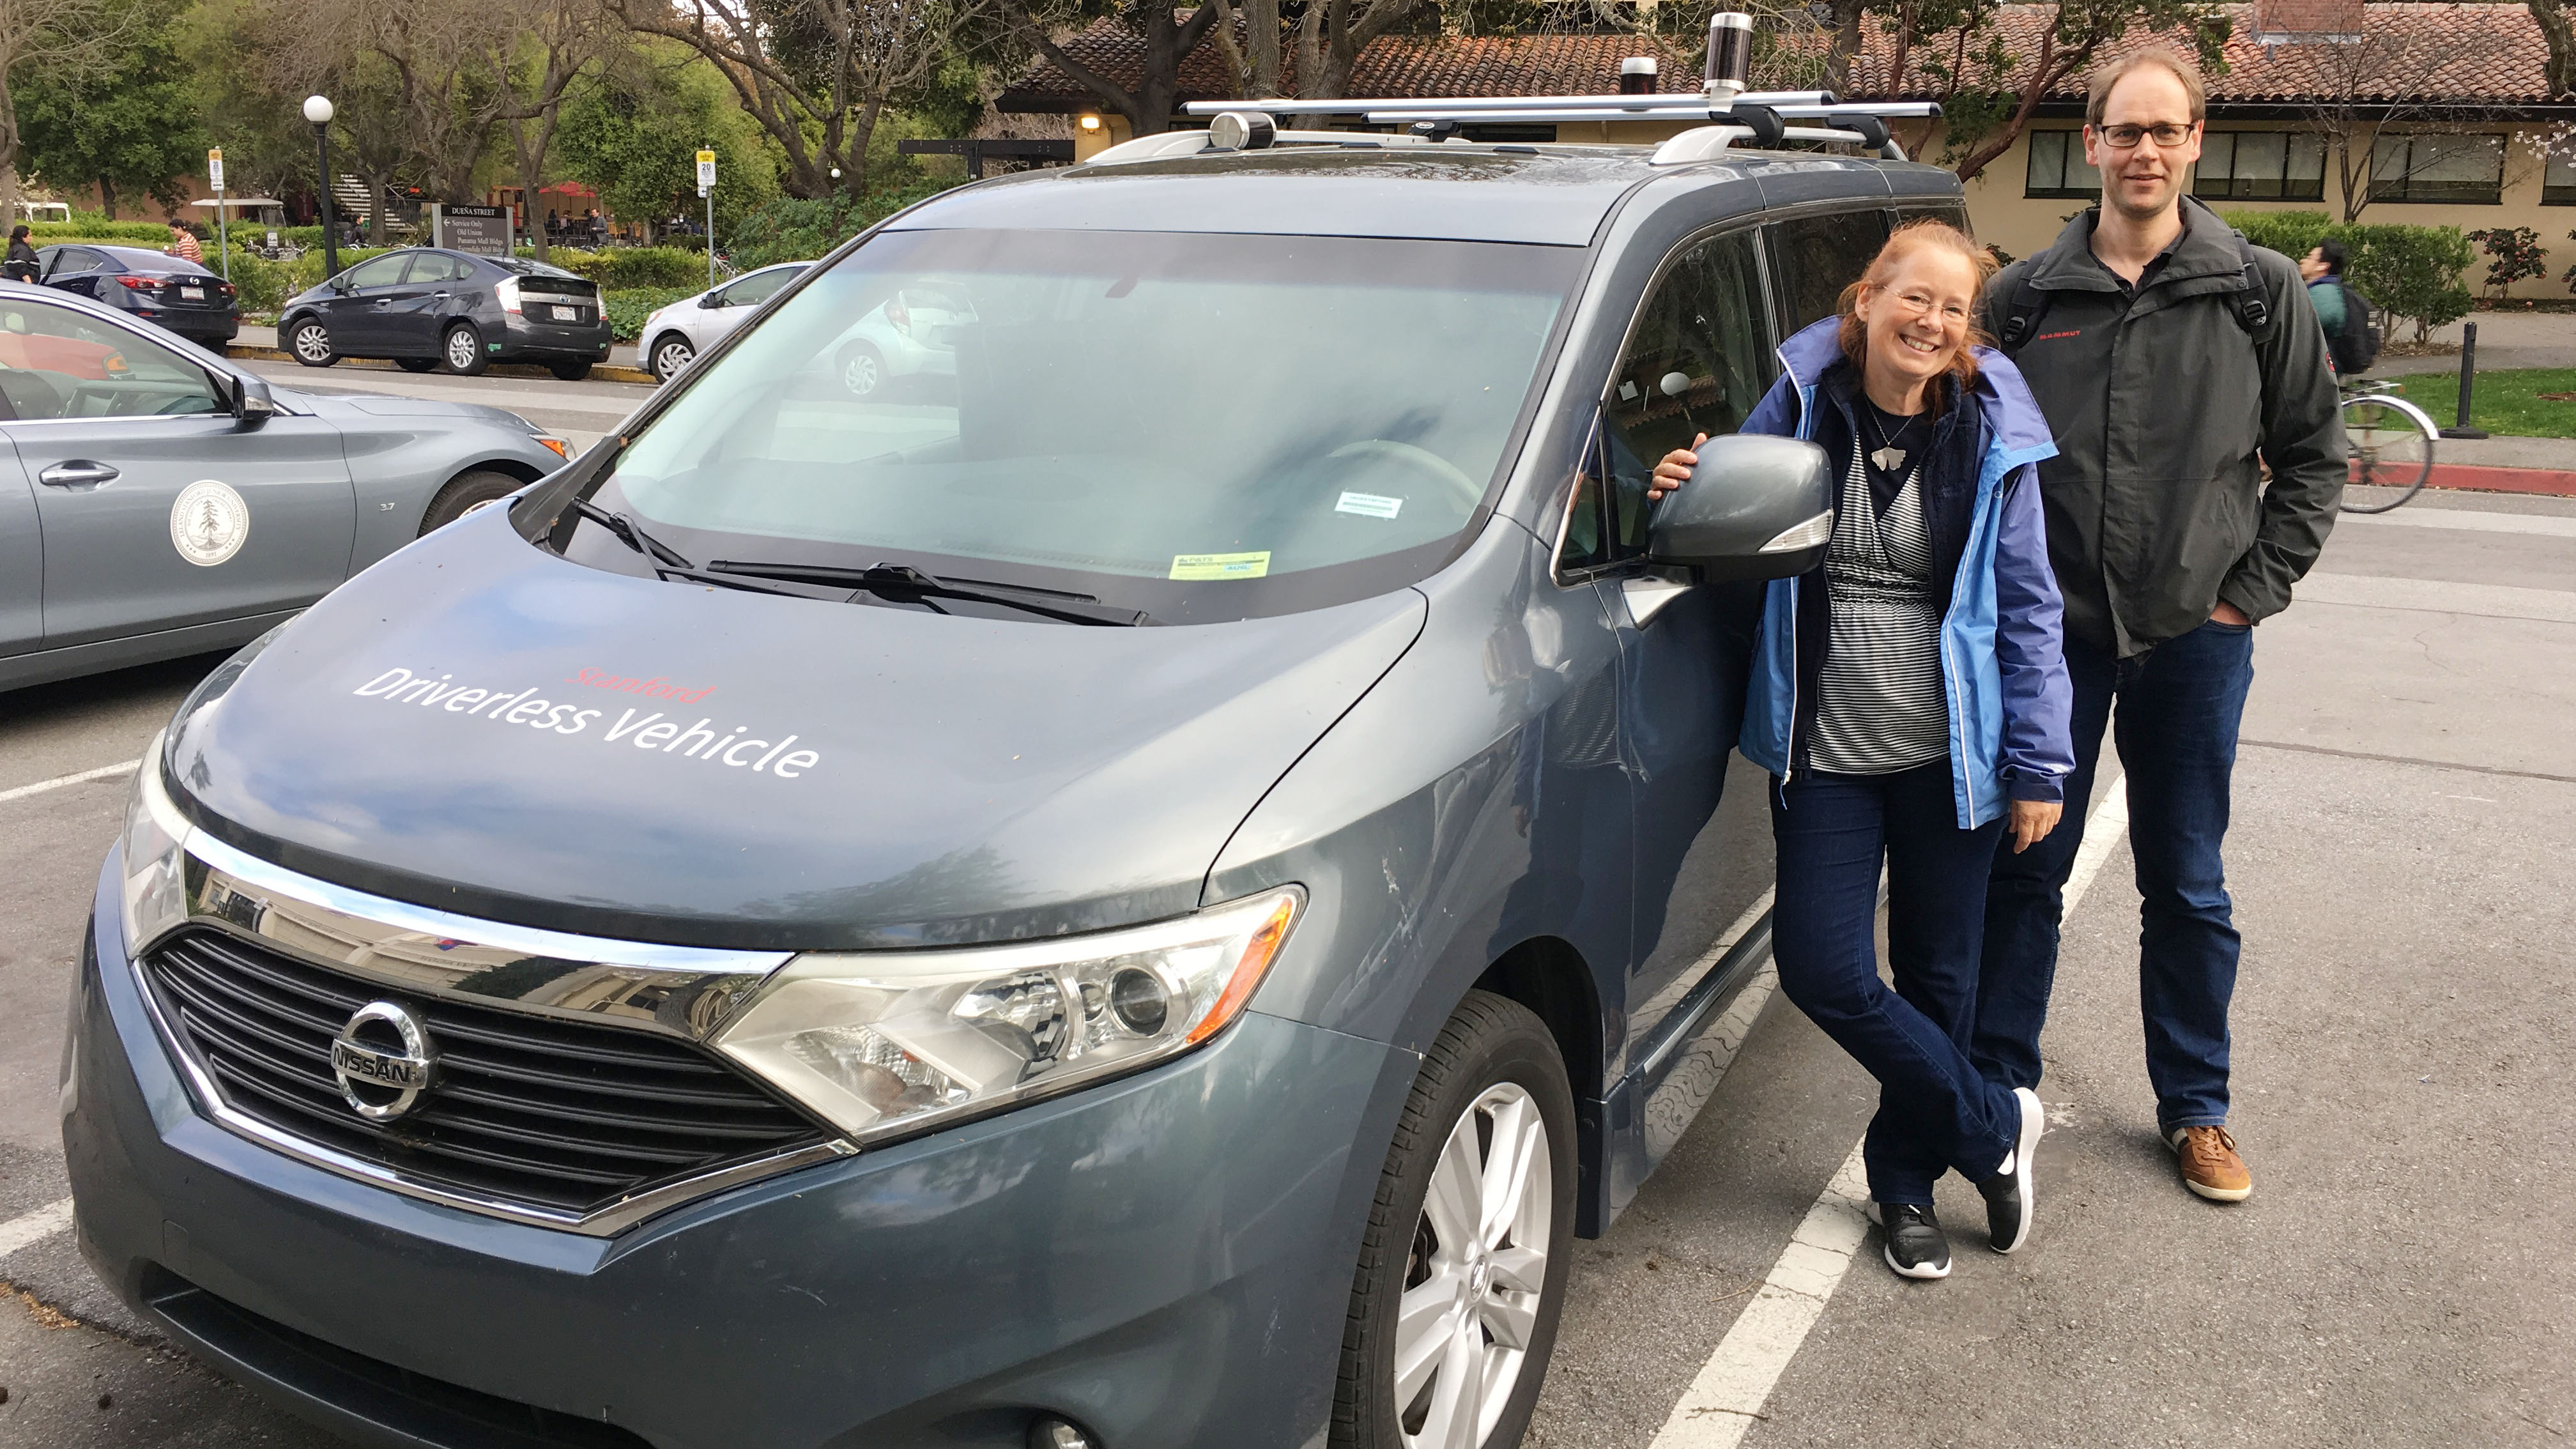 Kerstin Fischer and Kristian Mortensen with one of the 'Stanford Autonomous Cars' on Stanford Campus